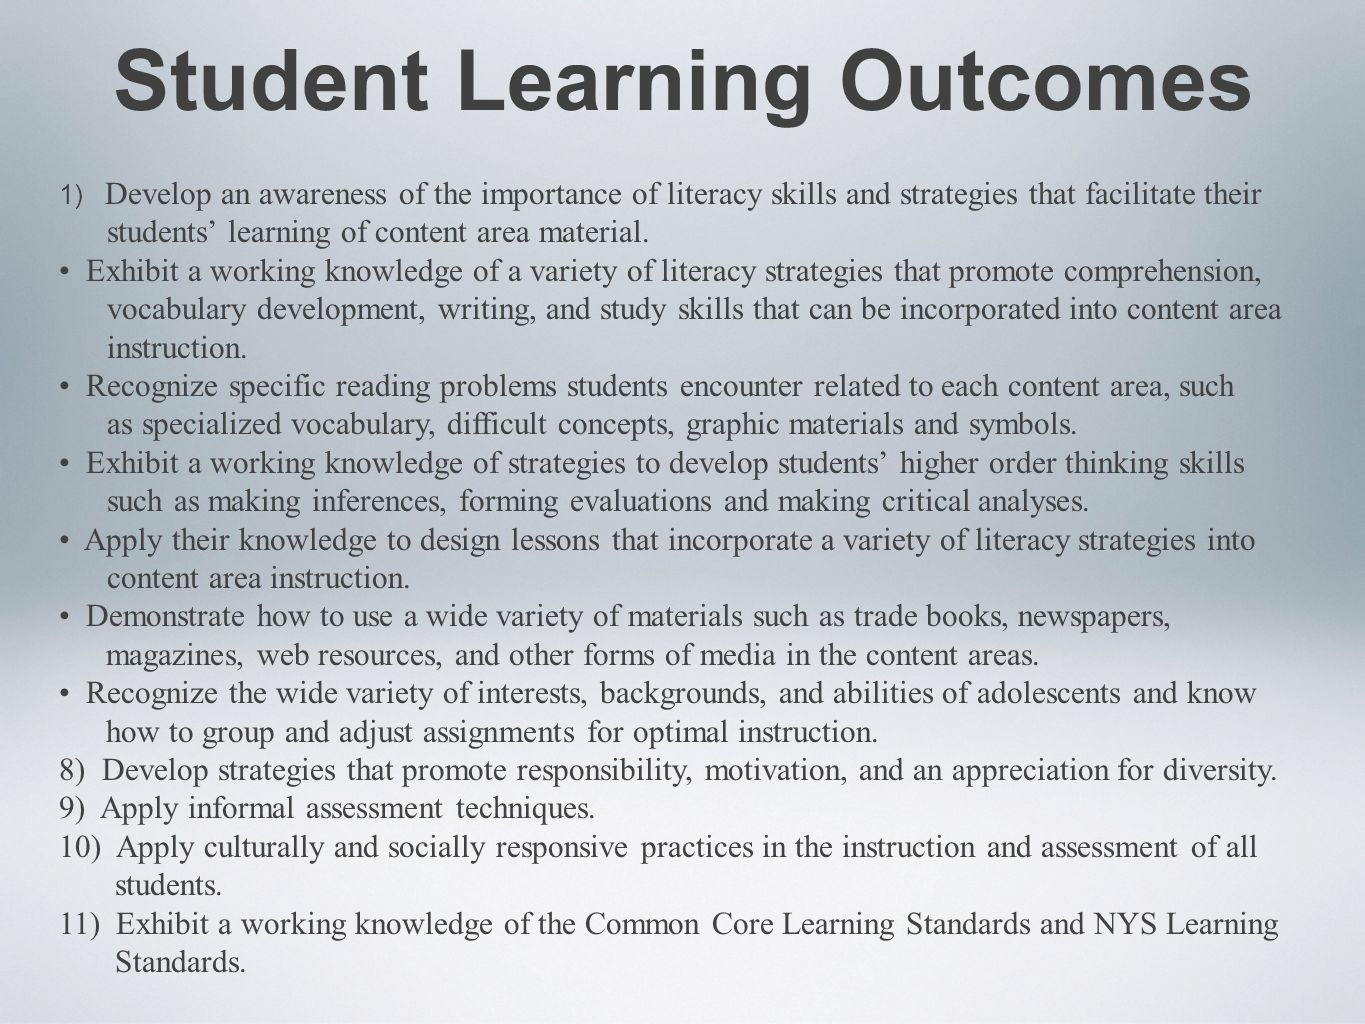 Student Learning Outcomes 1) Develop an awareness of the importance of literacy skills and strategies that facilitate their students' learning of content area material.